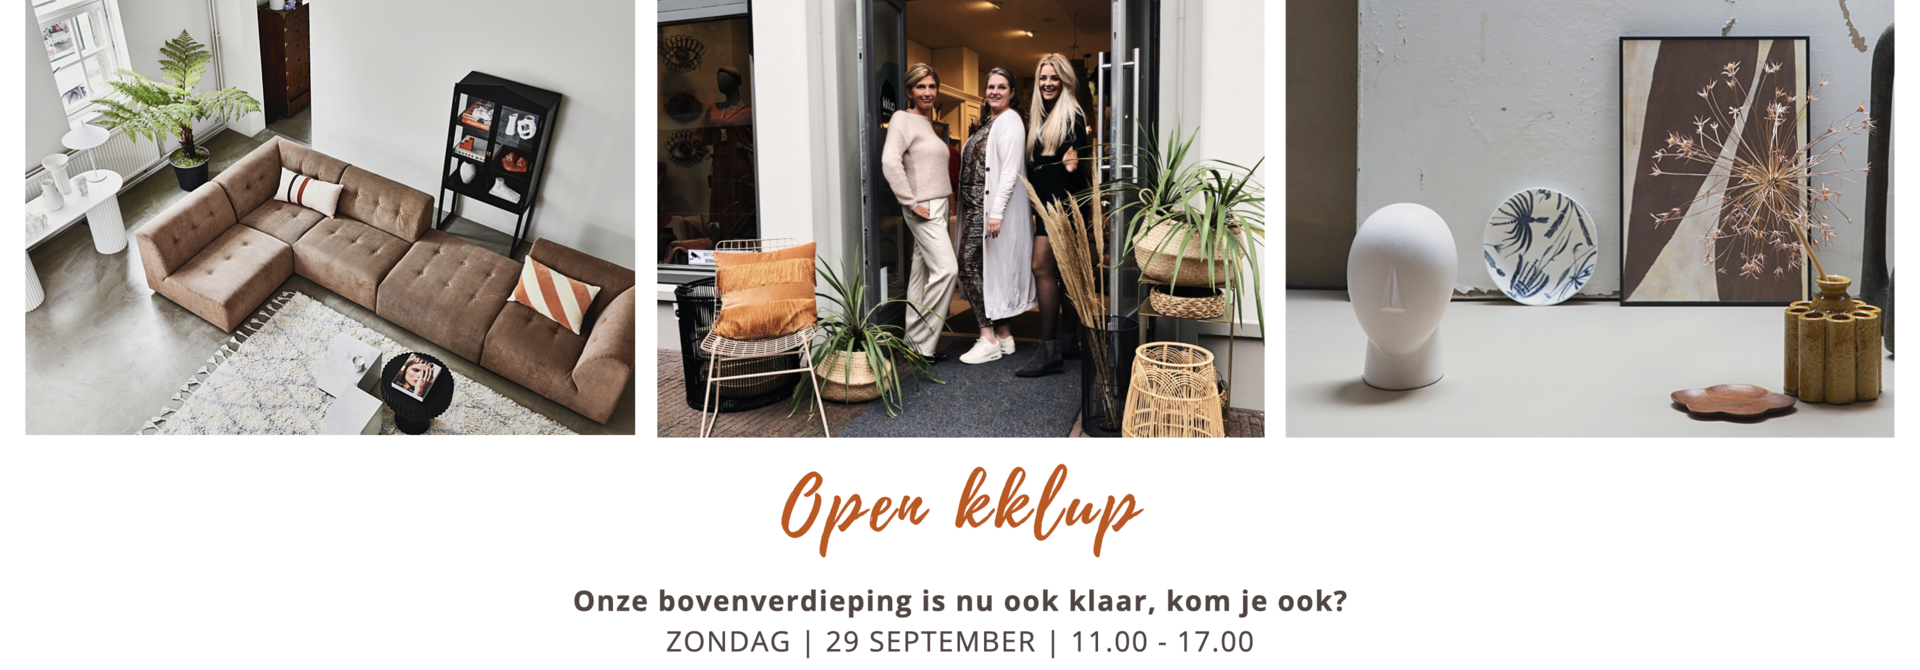 Open kklup op 29 september!